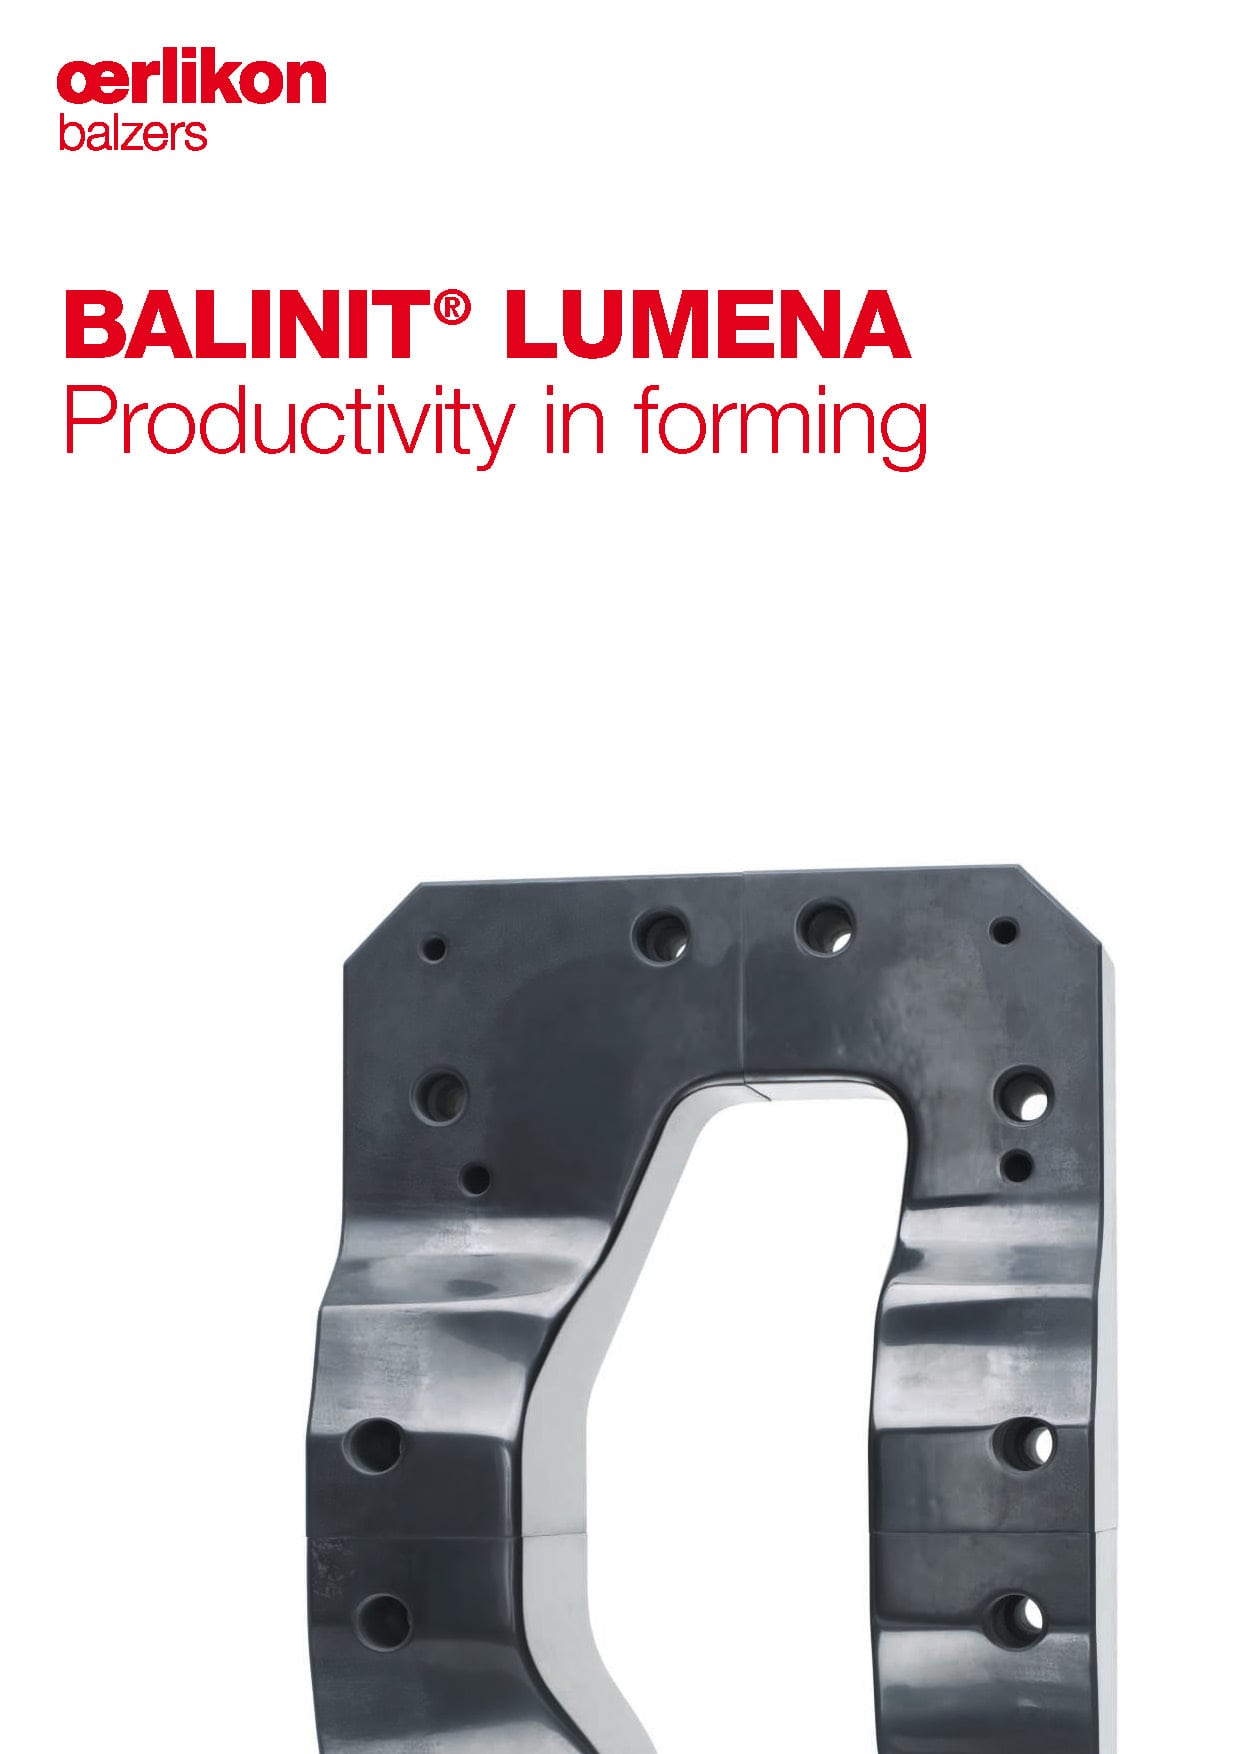 BALINIT® LUMENA - Productivity in forming